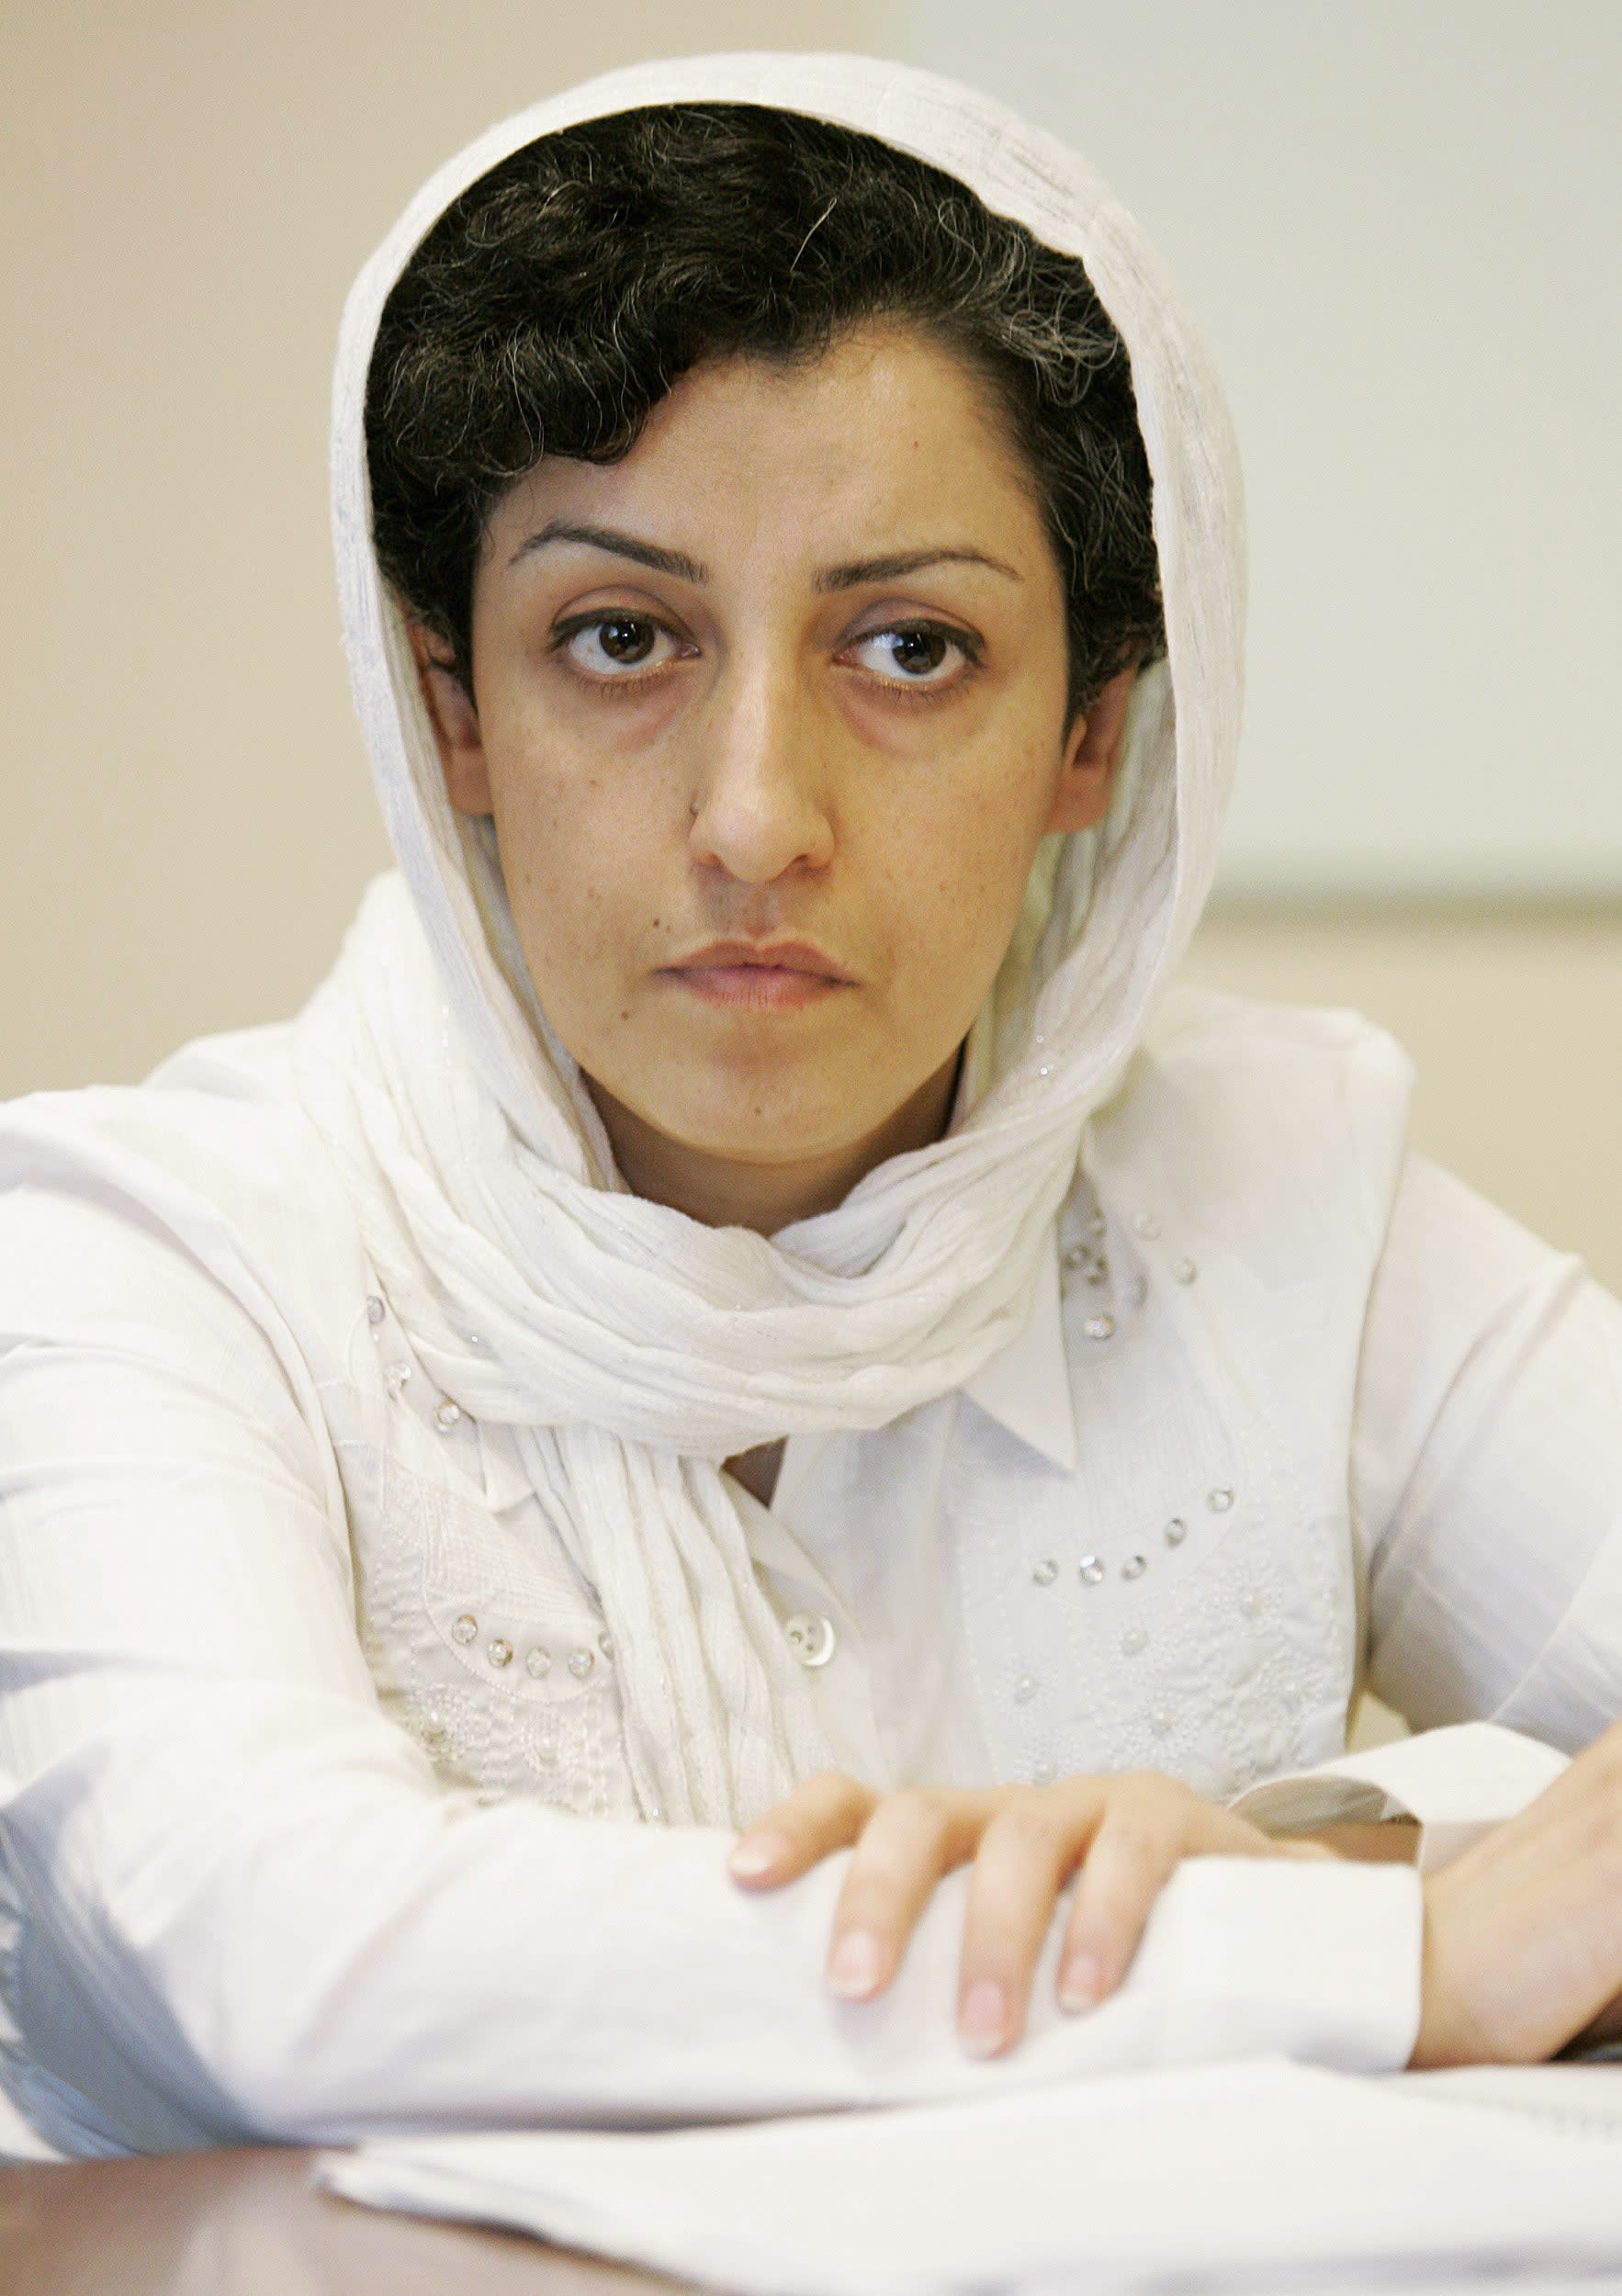 Prominent Iranian human rights activist is detained